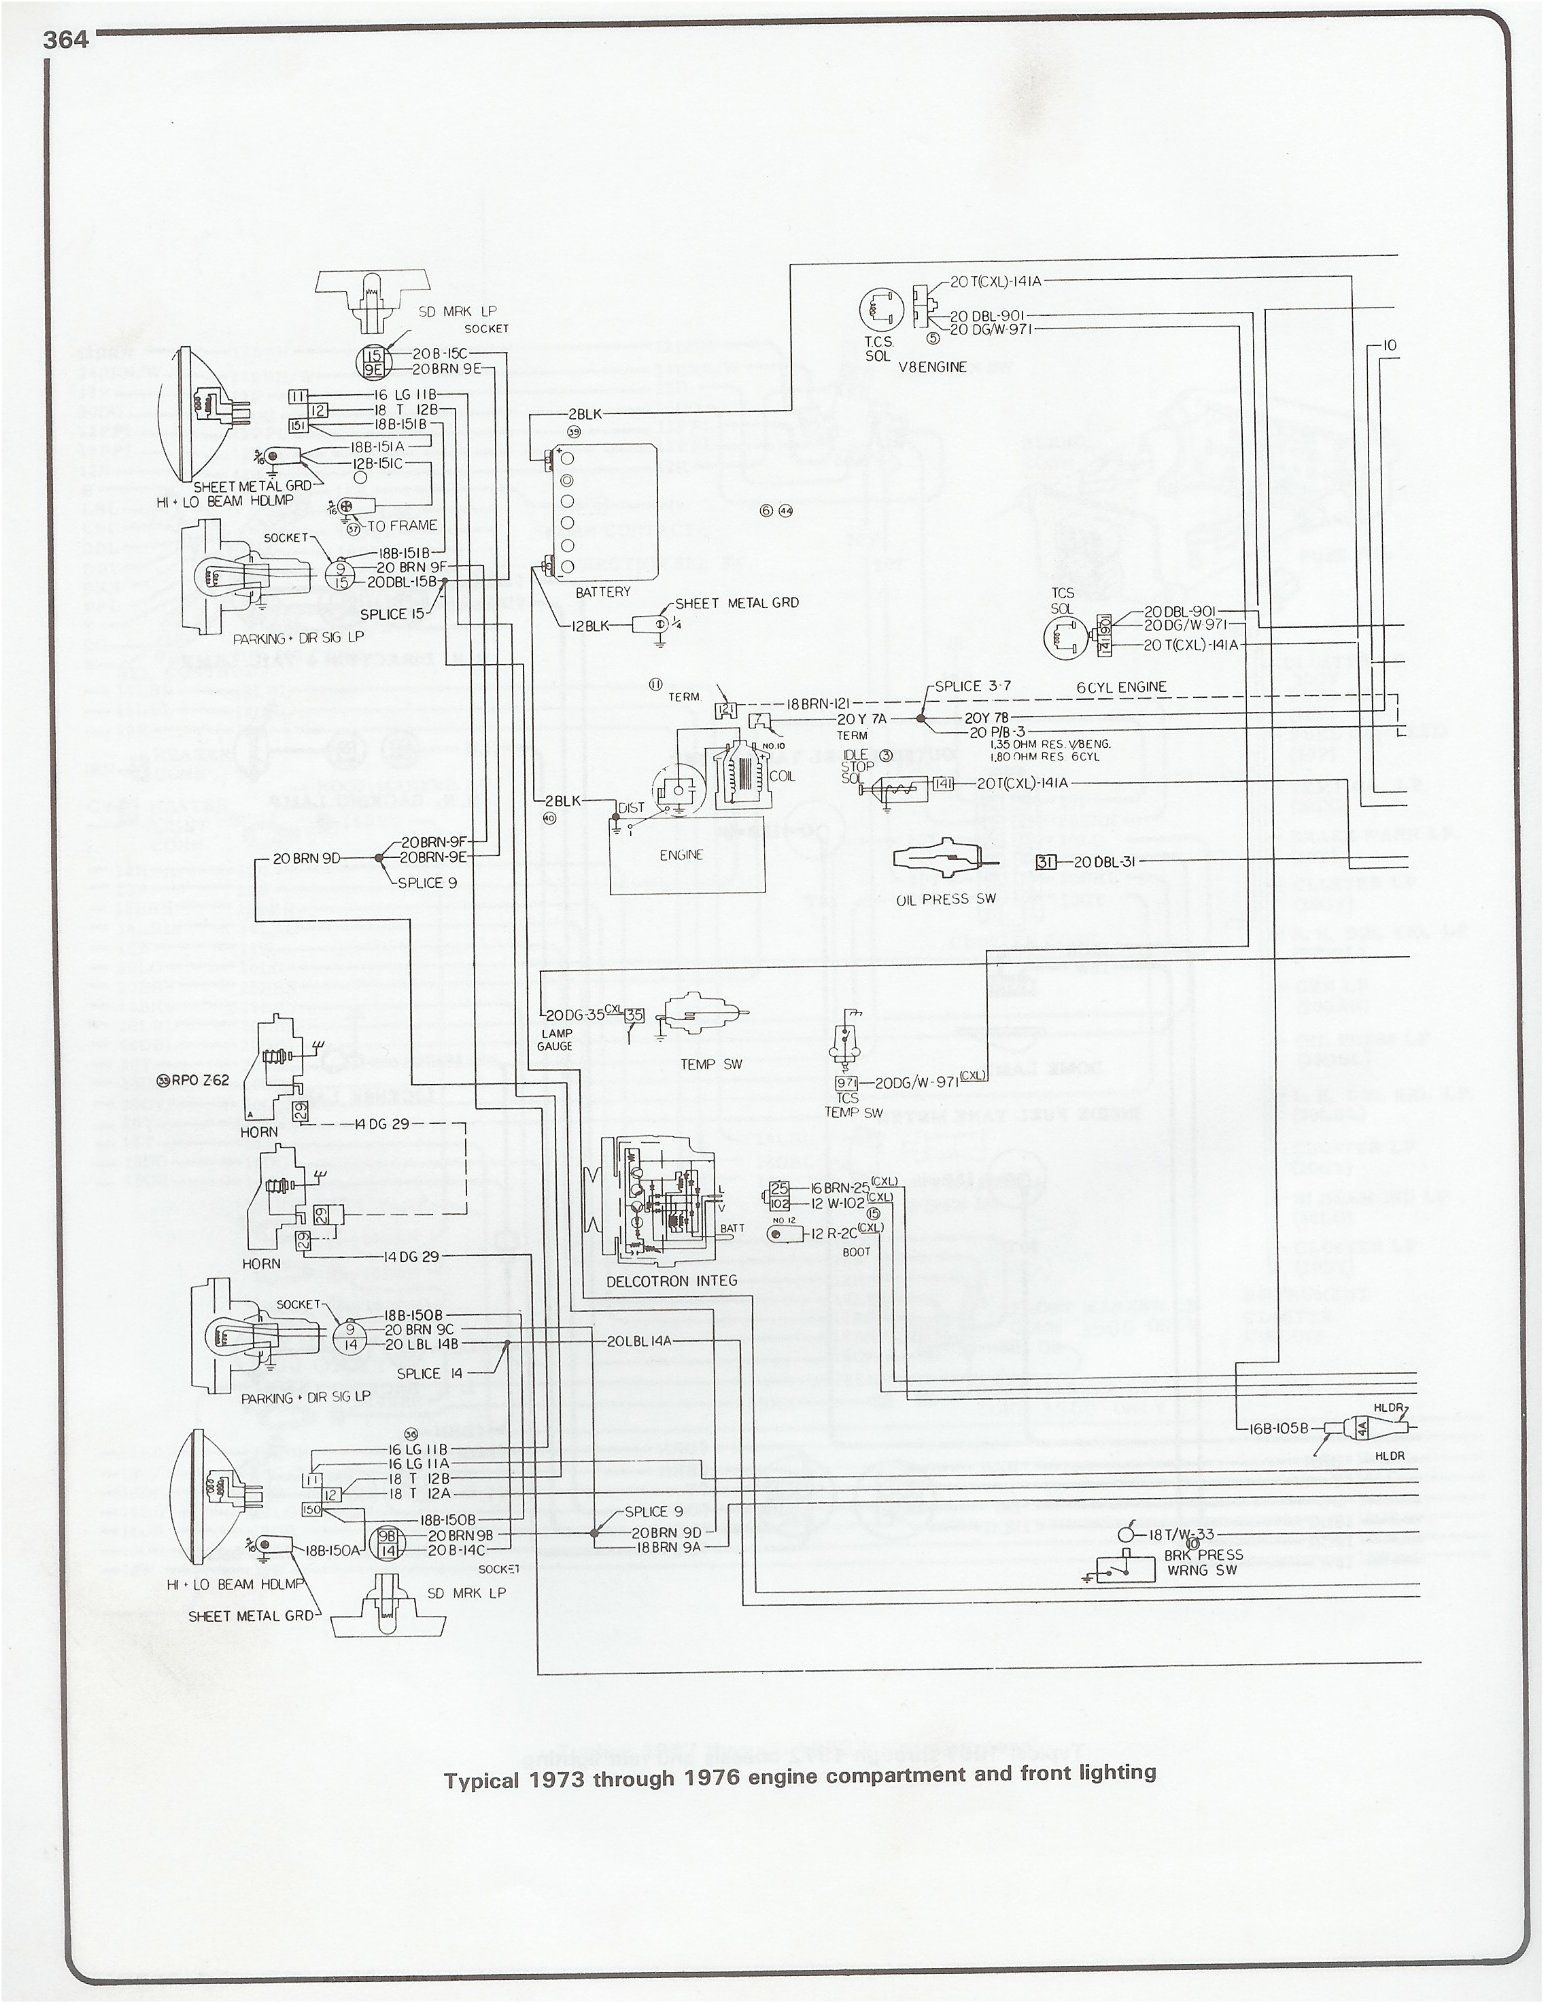 Chevy Pickup Wiring Diagram | Wiring Schematic Diagram on